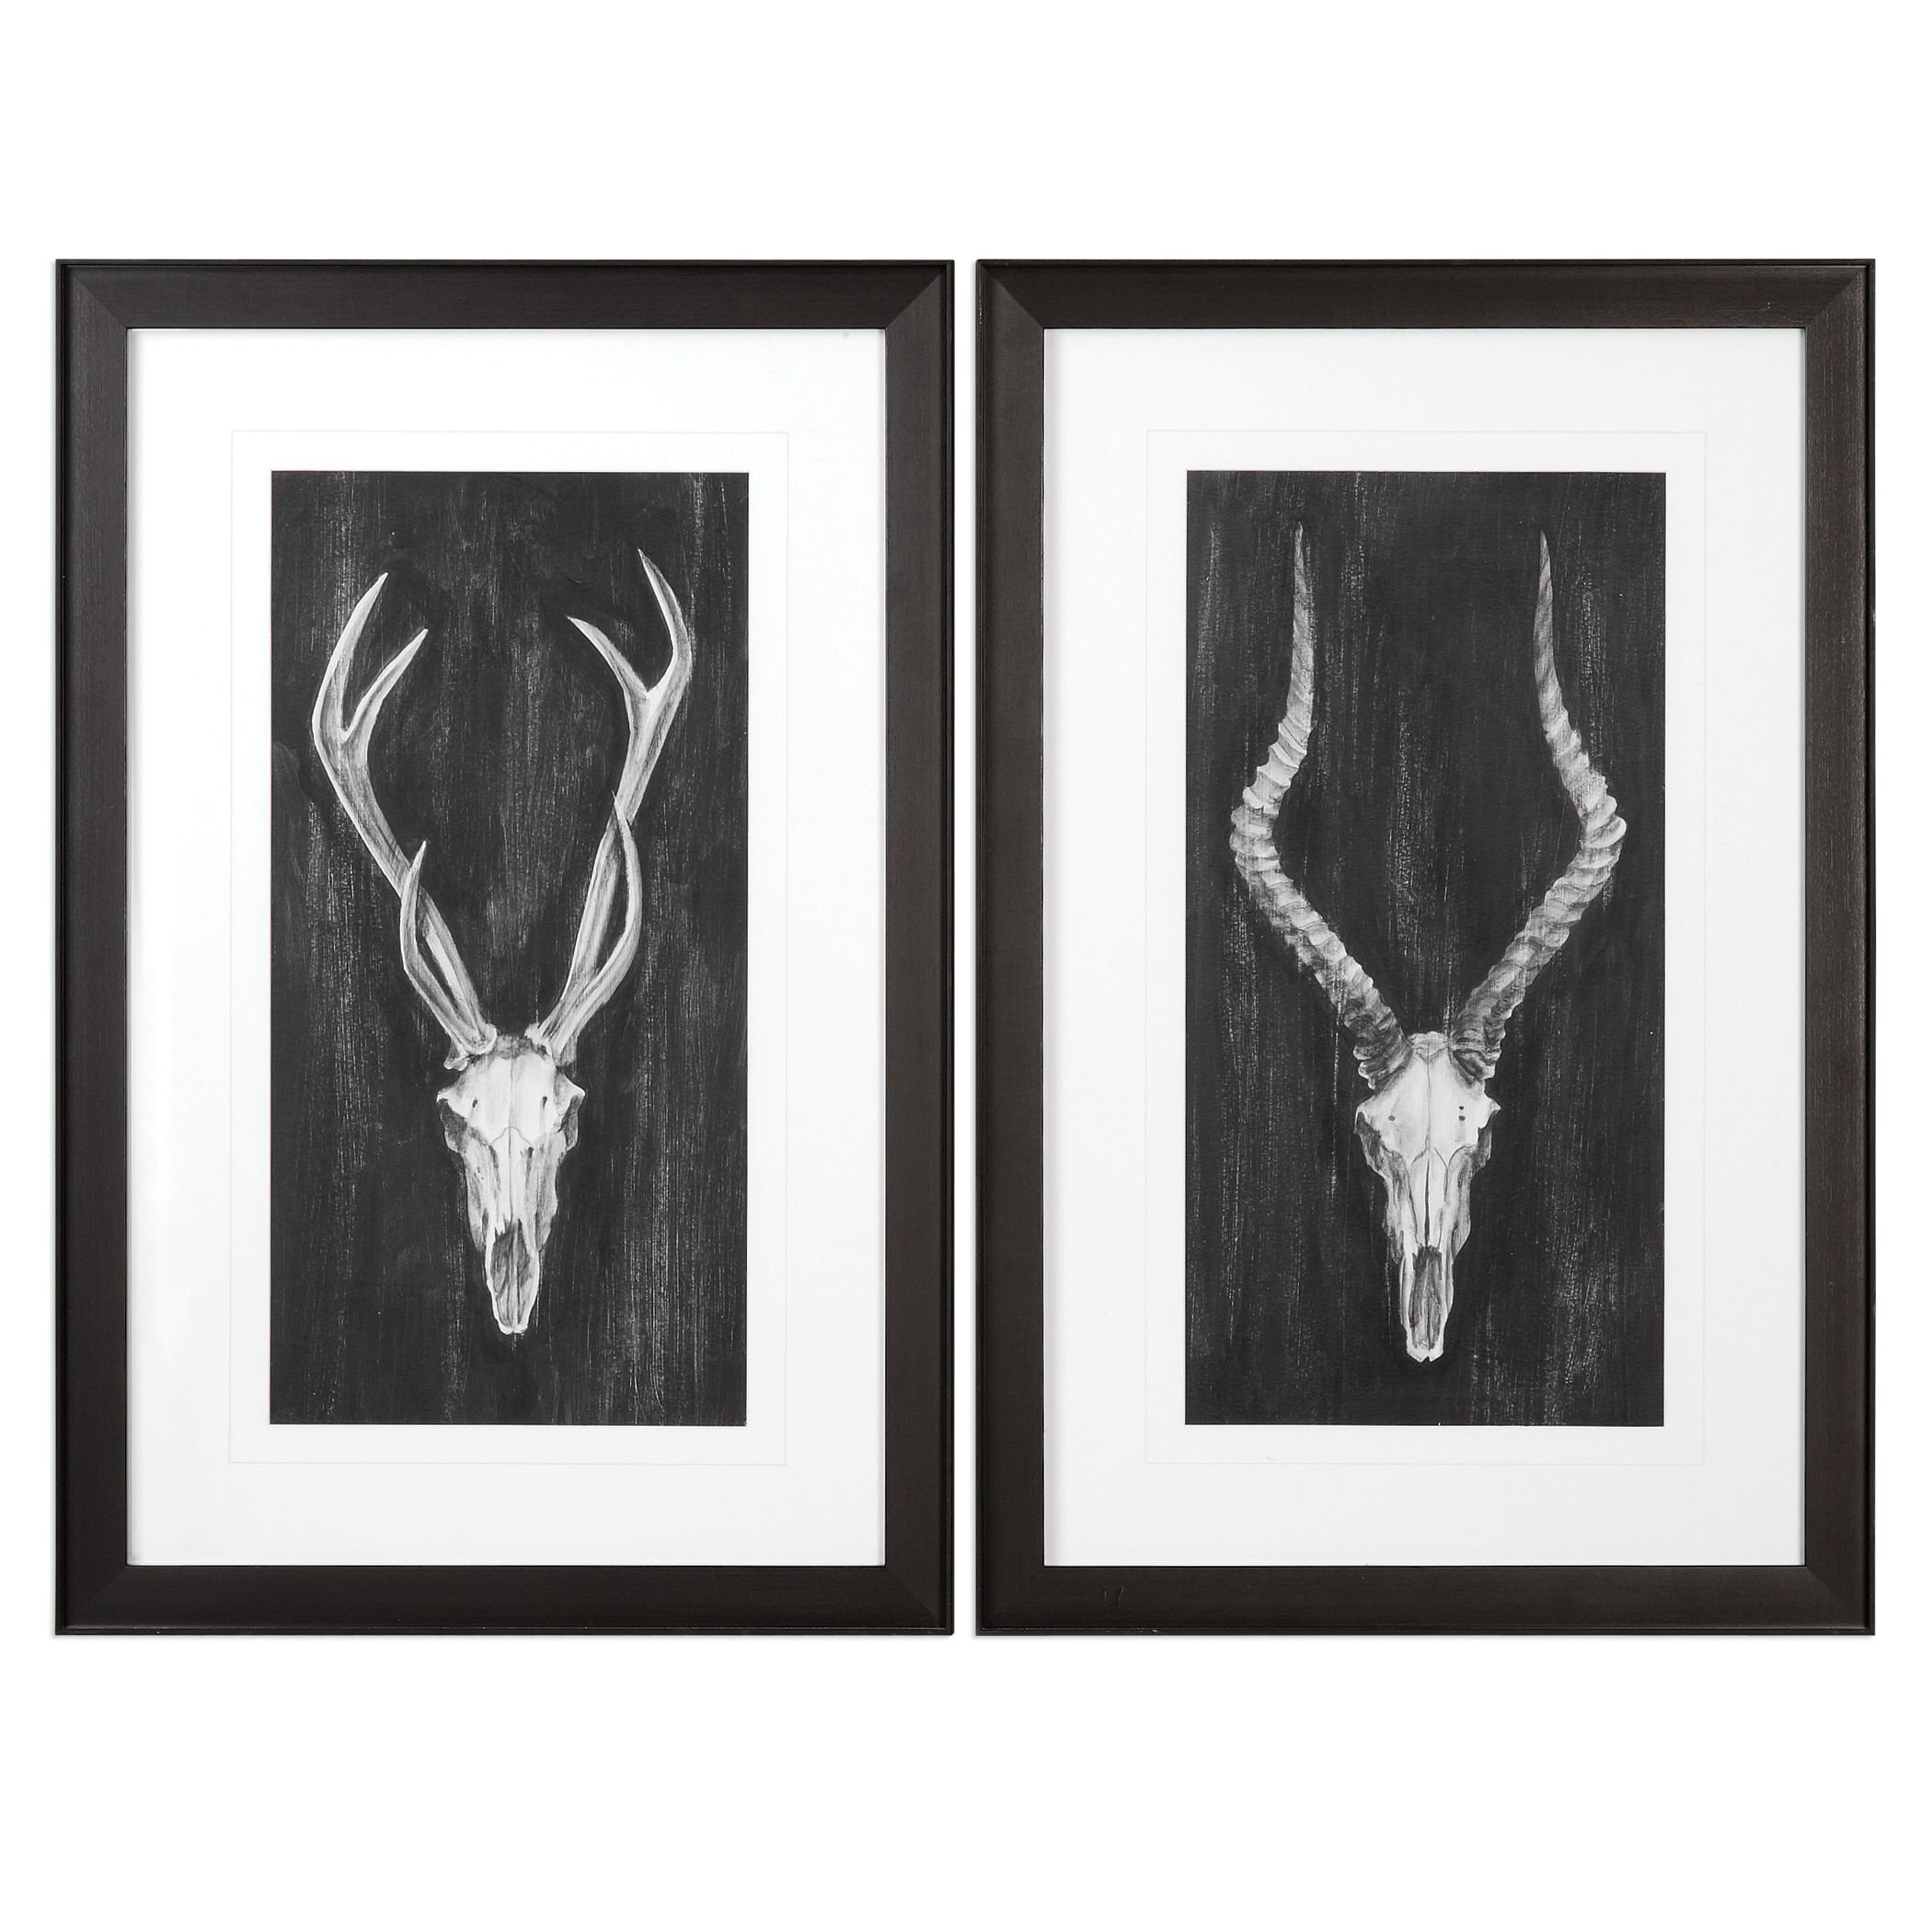 Rustic Lodge Vintage Style Deer Skull Wall Art Set | Hunting Trophy Black Gray Pair